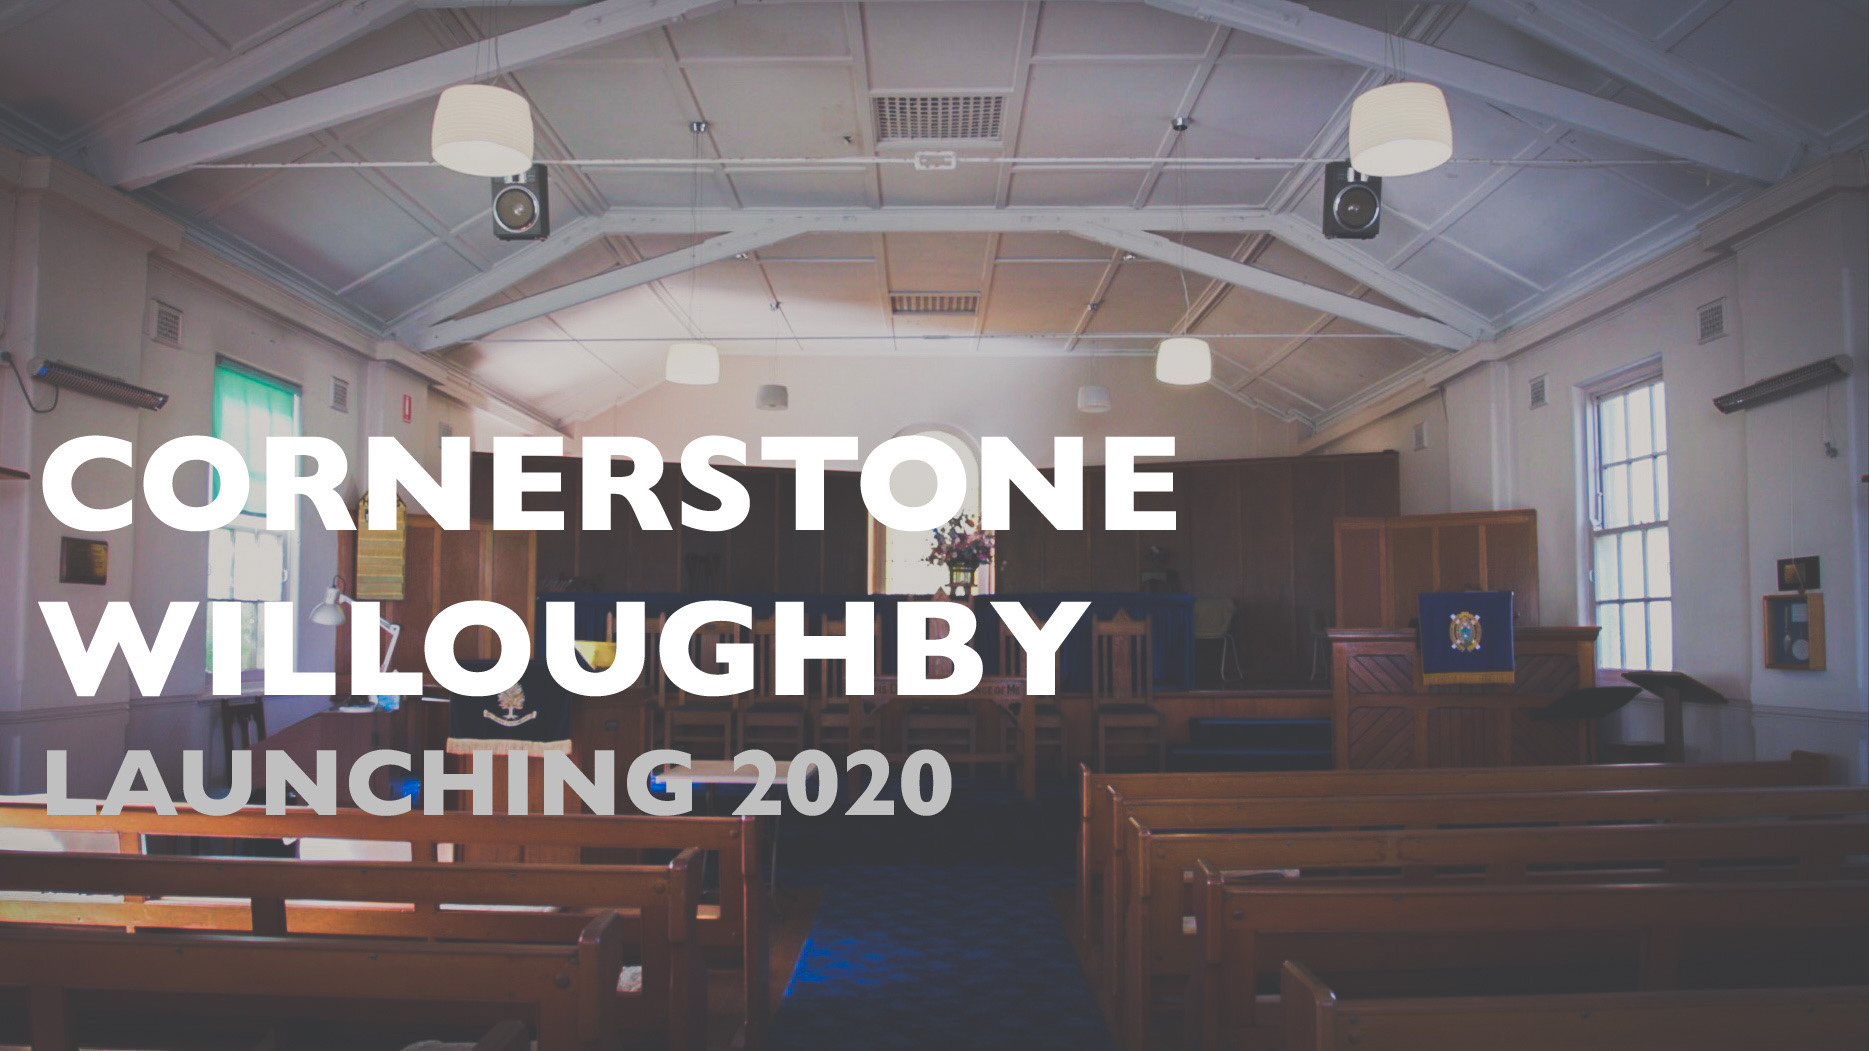 willoughby launching 2020